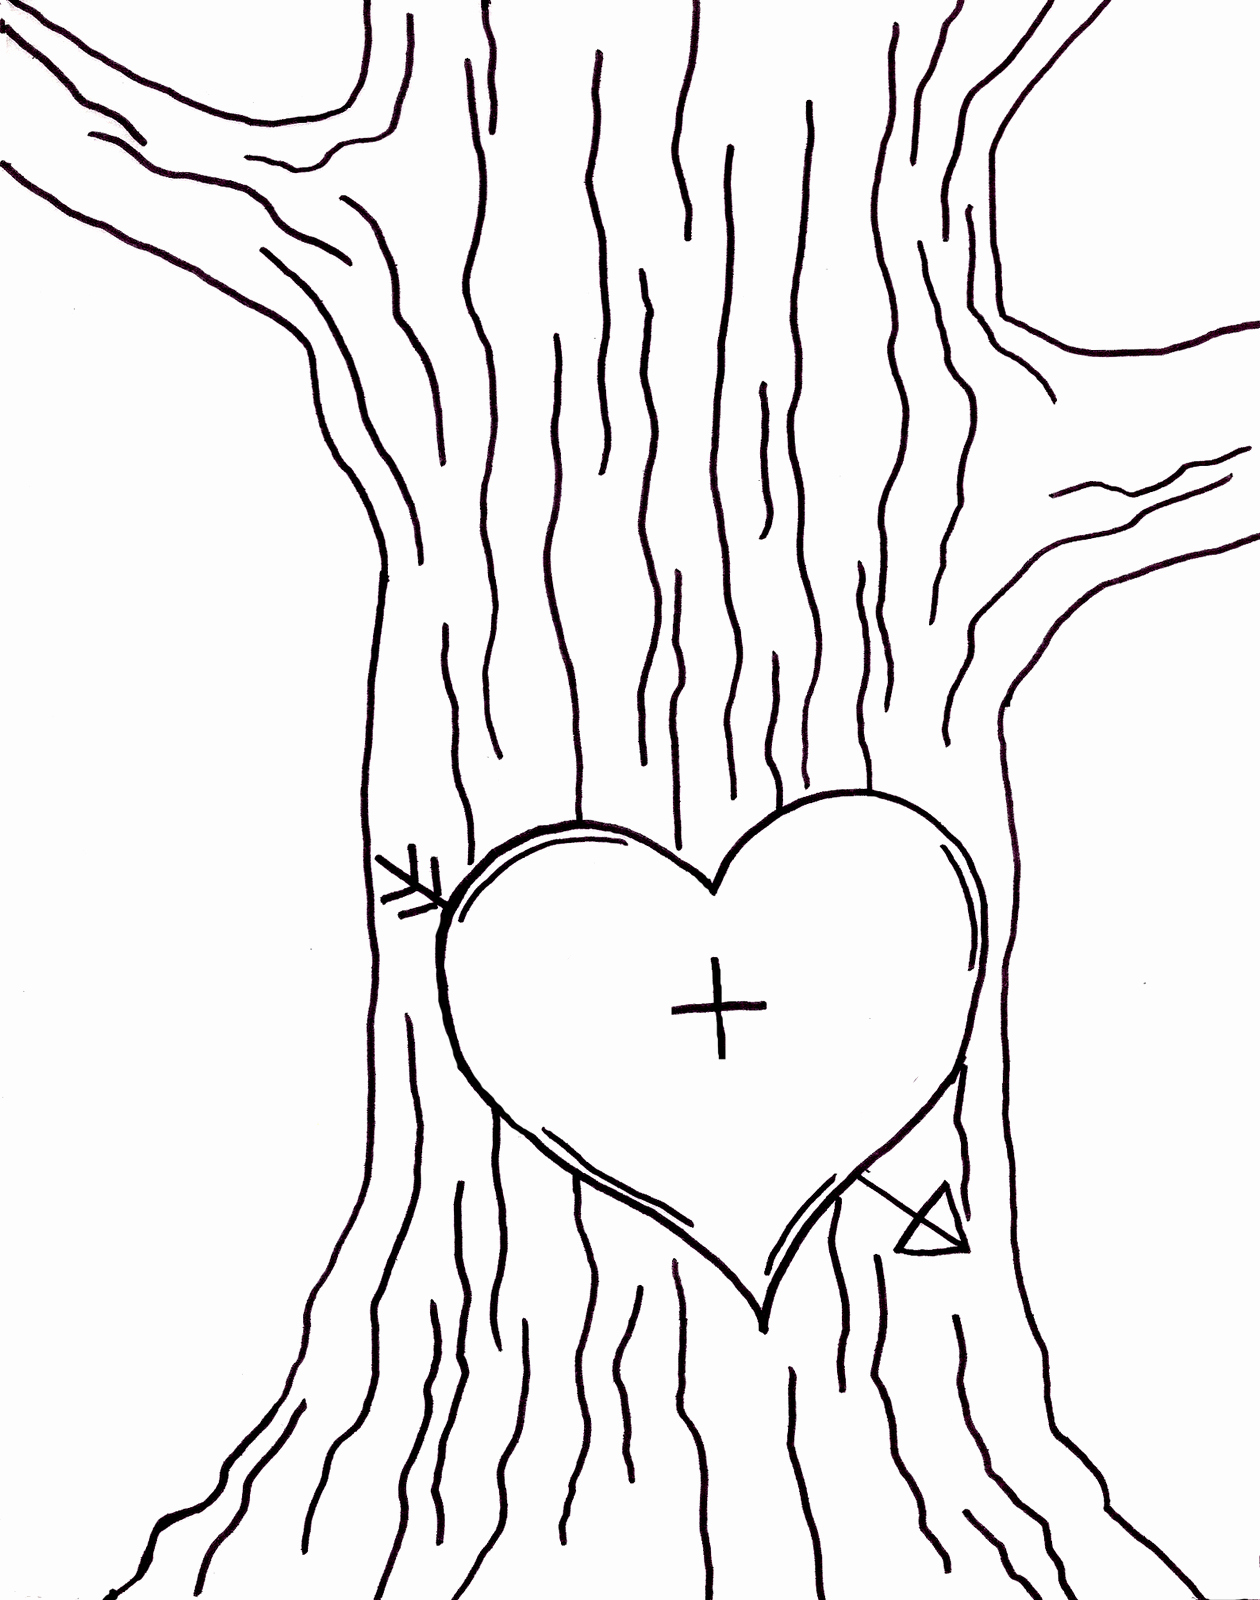 Tree Trunk Template Lovely Cat On A Limb Tree Love Embroidery Pattern